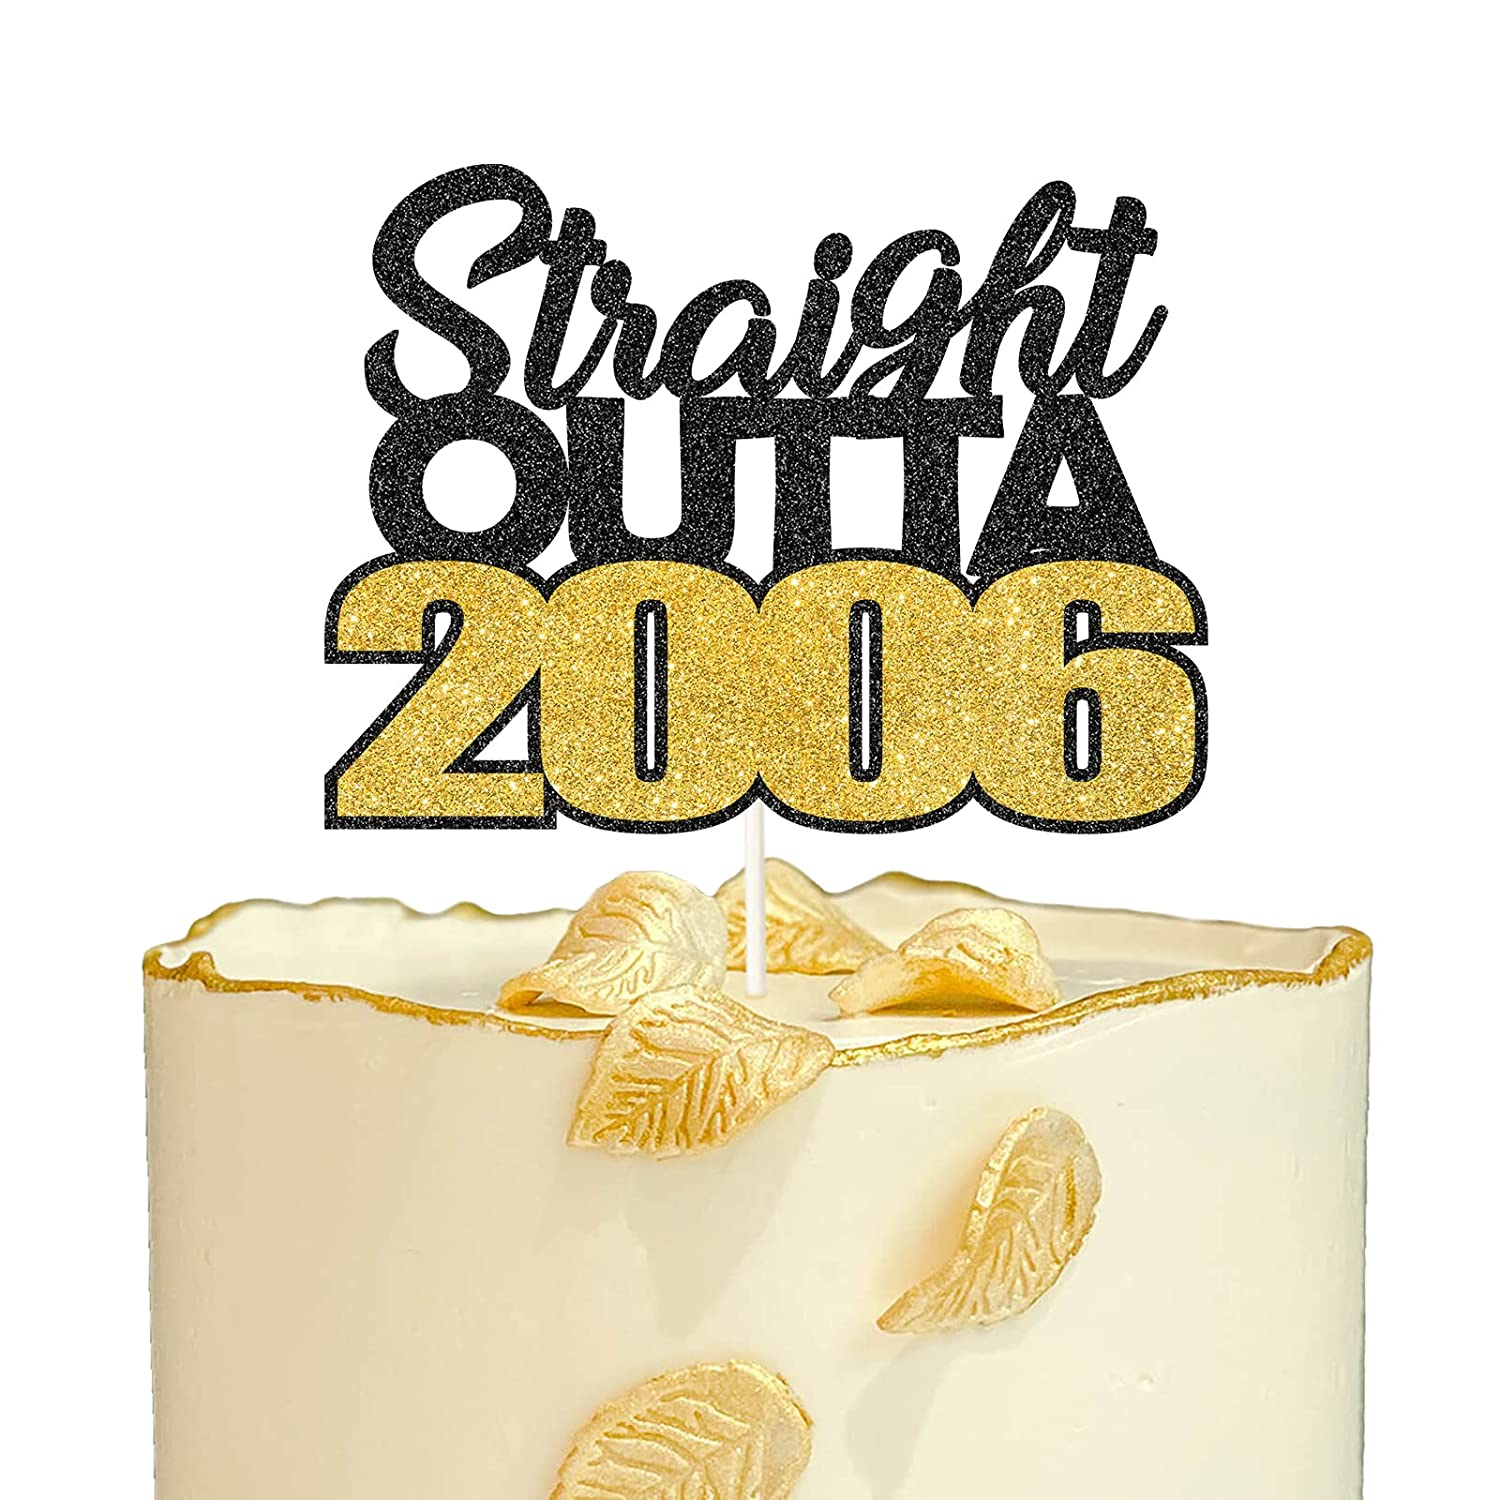 Straight Outta 2006 Cake Topper ,Glitter Cheers to 15 Years Cake Decor,Happy 15th Birthday or Anniversary Party Decorations